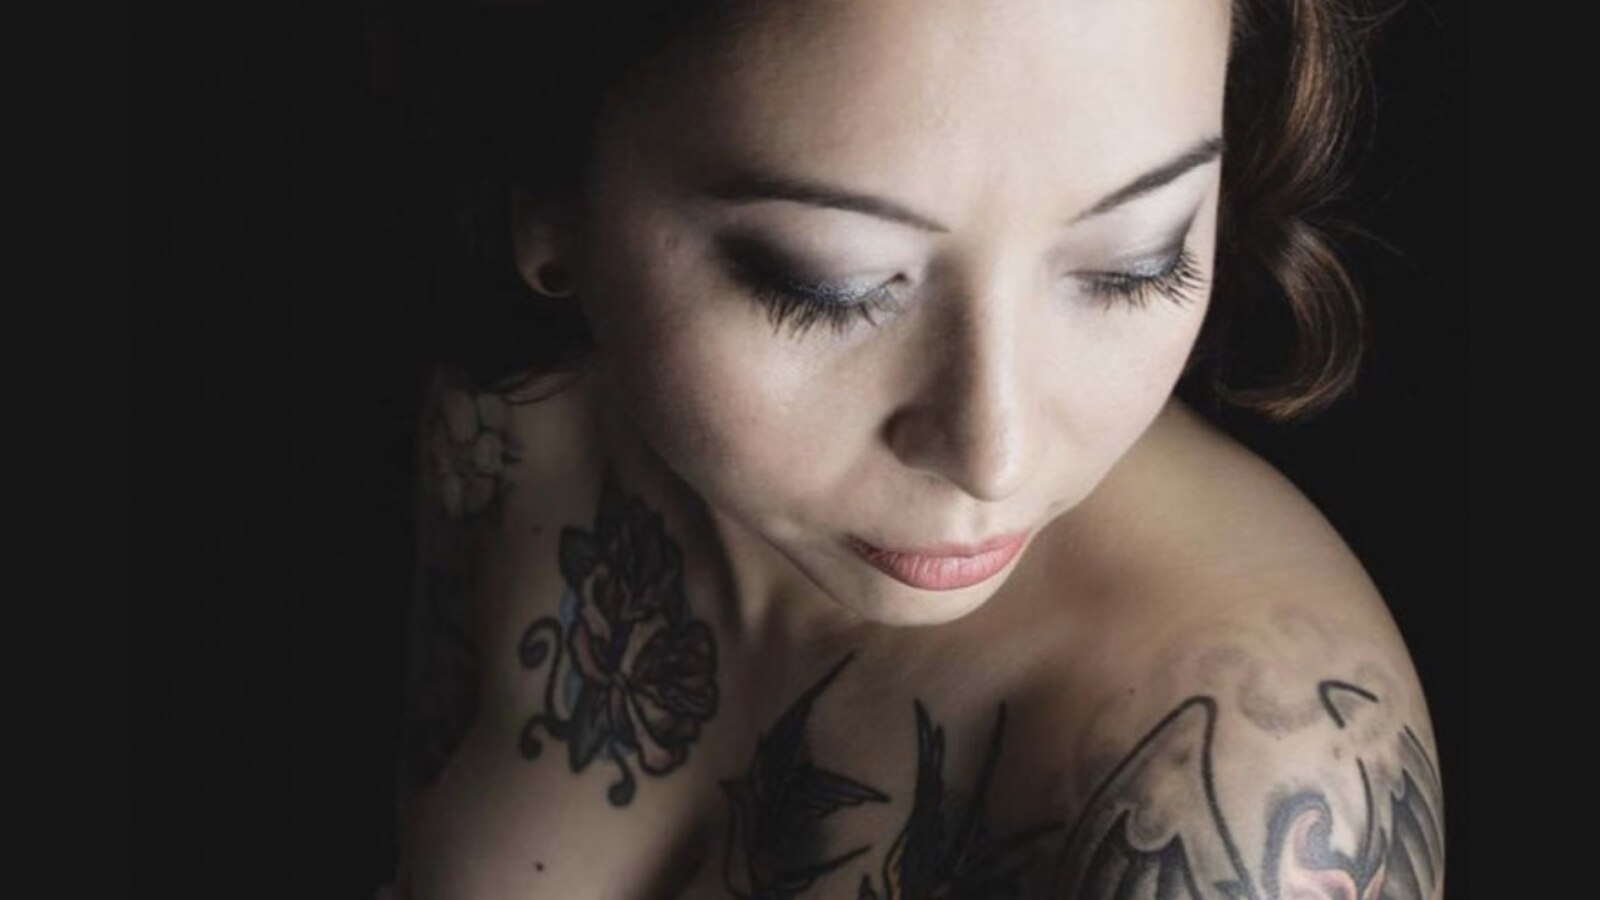 Tattooed vet competes for cover girl spot with 'Inked' magazine